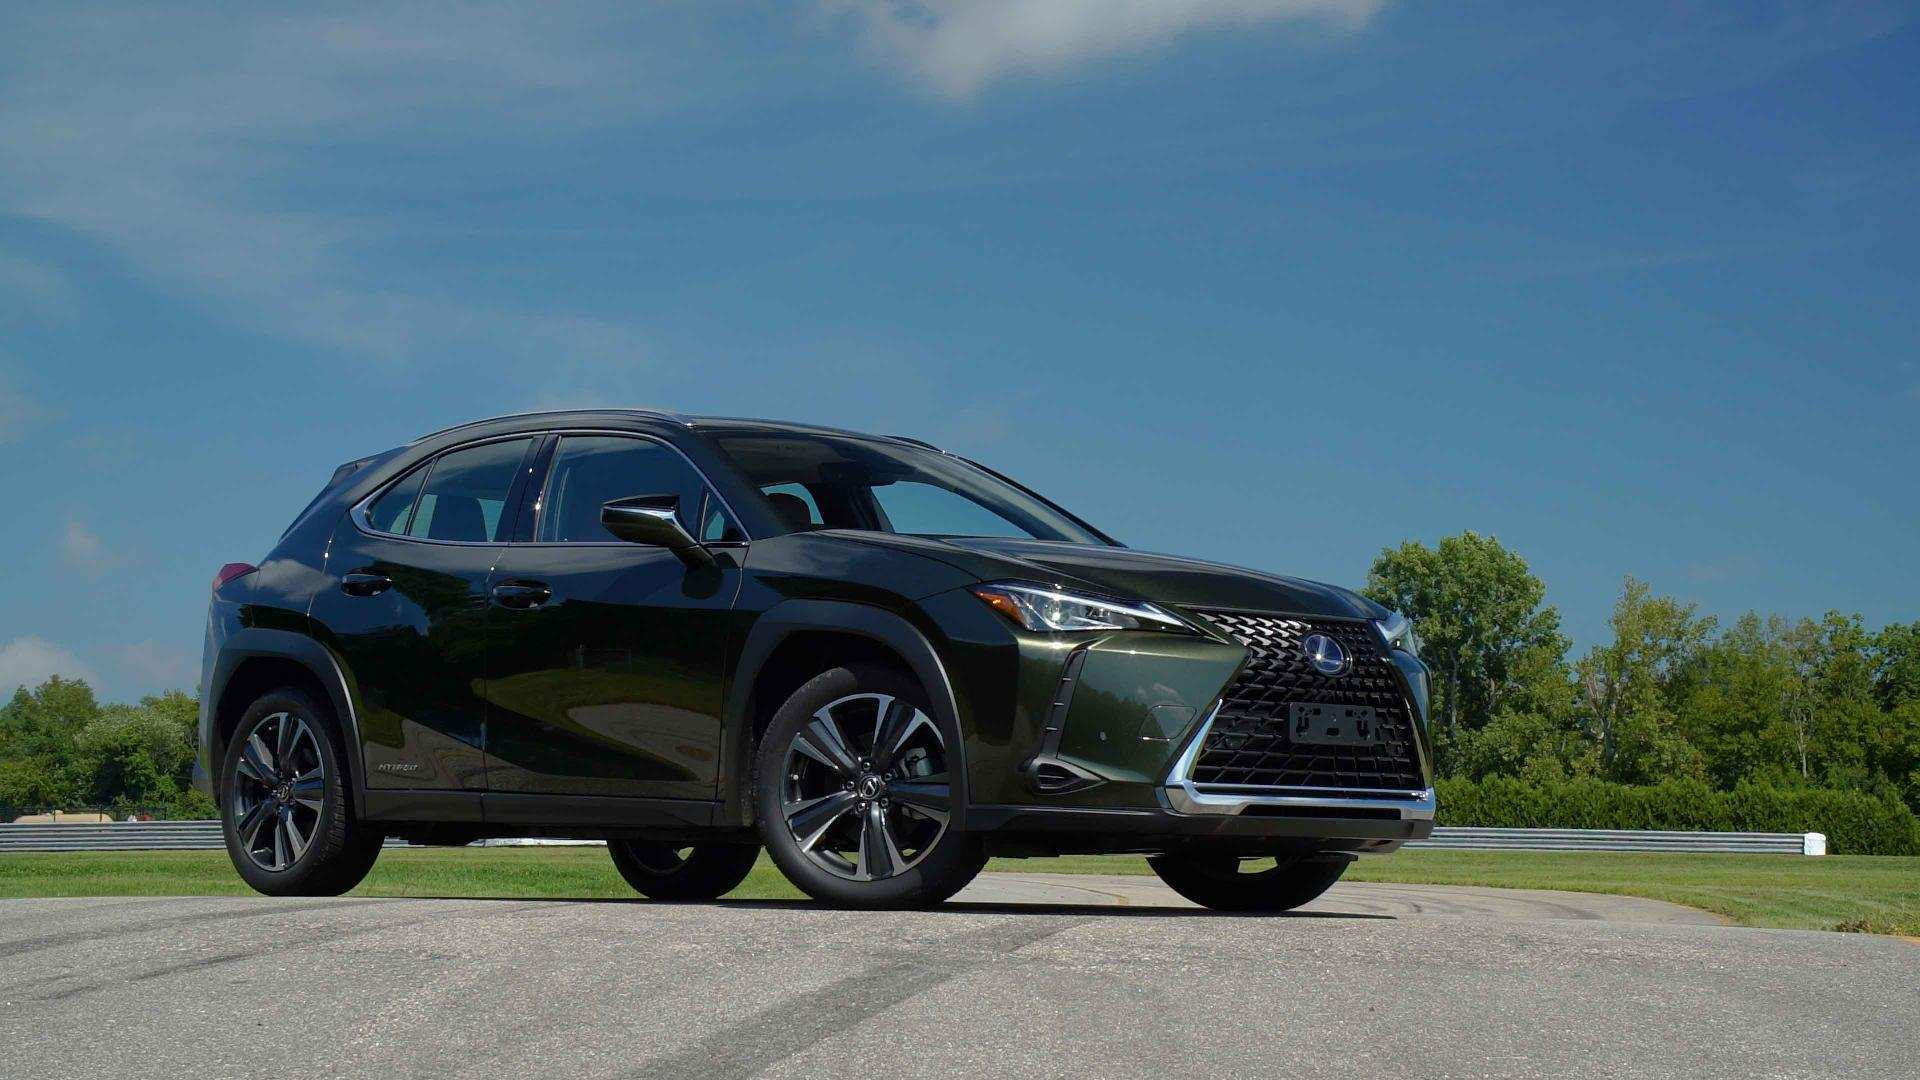 28 New 2019 Lexus Ux Hybrid Rumors by 2019 Lexus Ux Hybrid